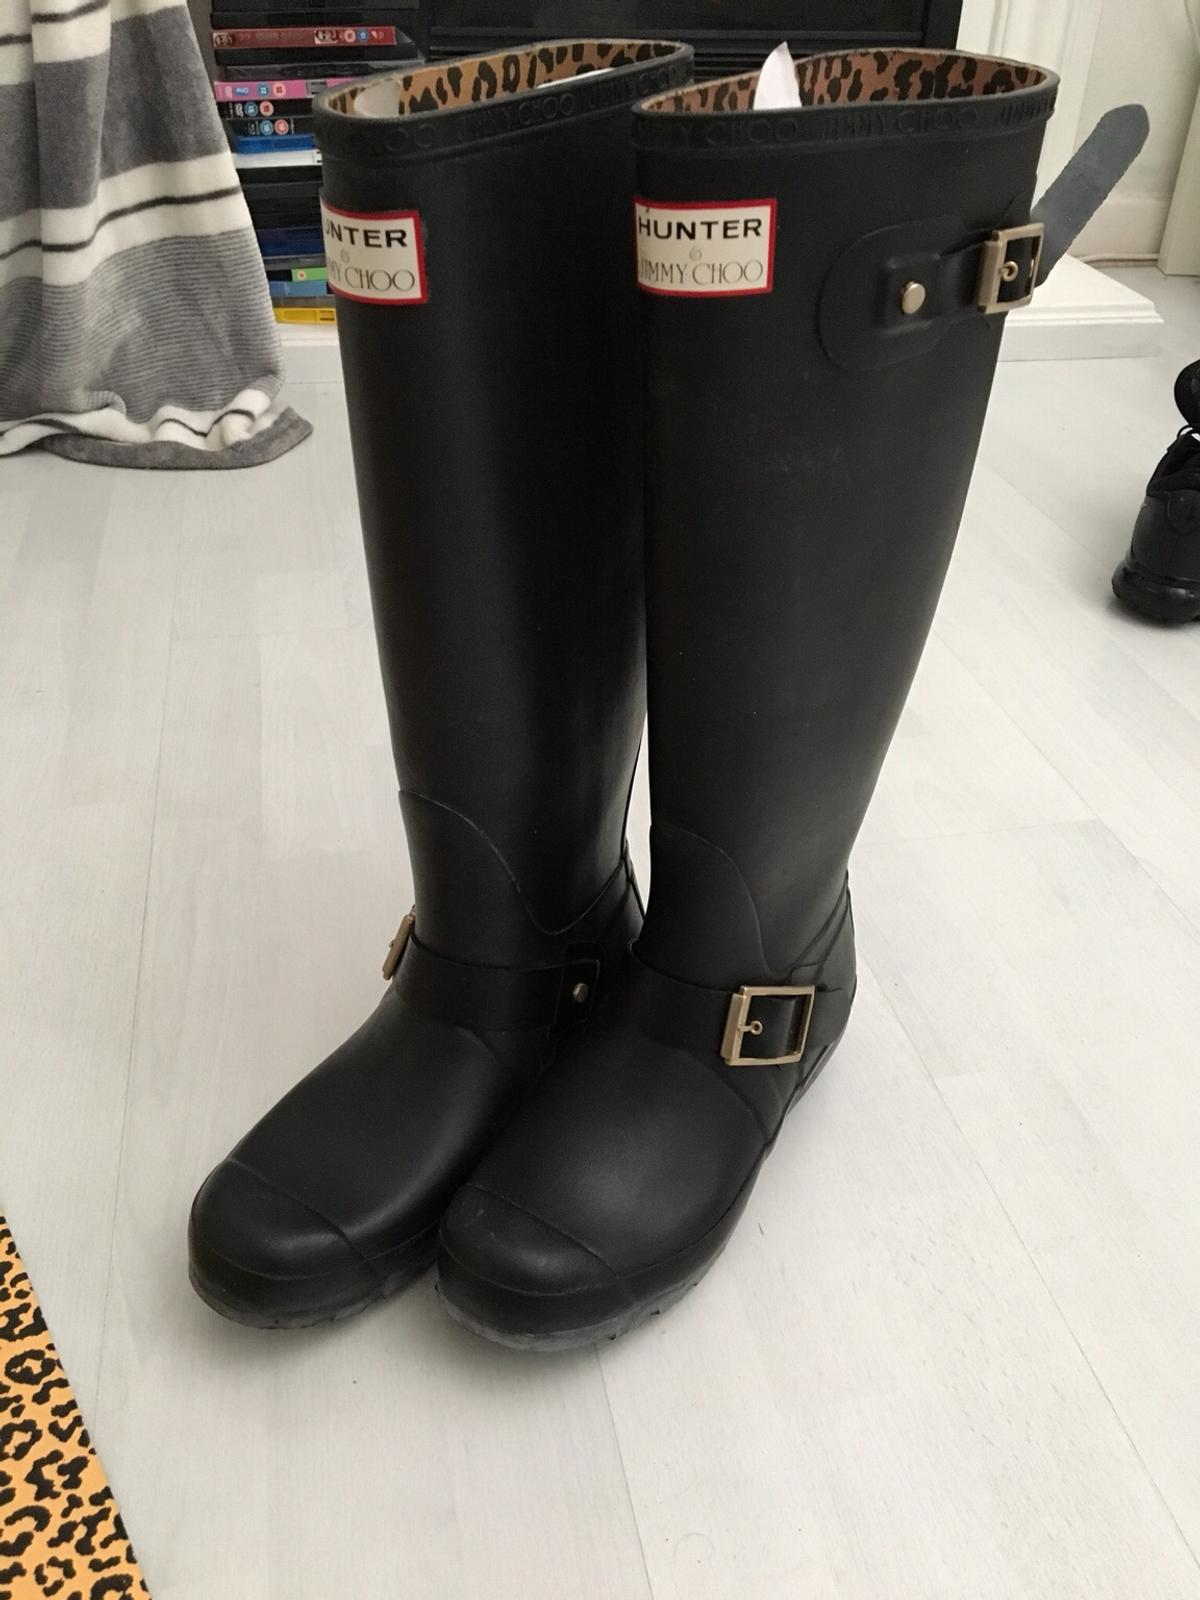 891e20dfd74 Jimmy choo x Hunter wellies boots size 6 in B29 Birmingham for ...